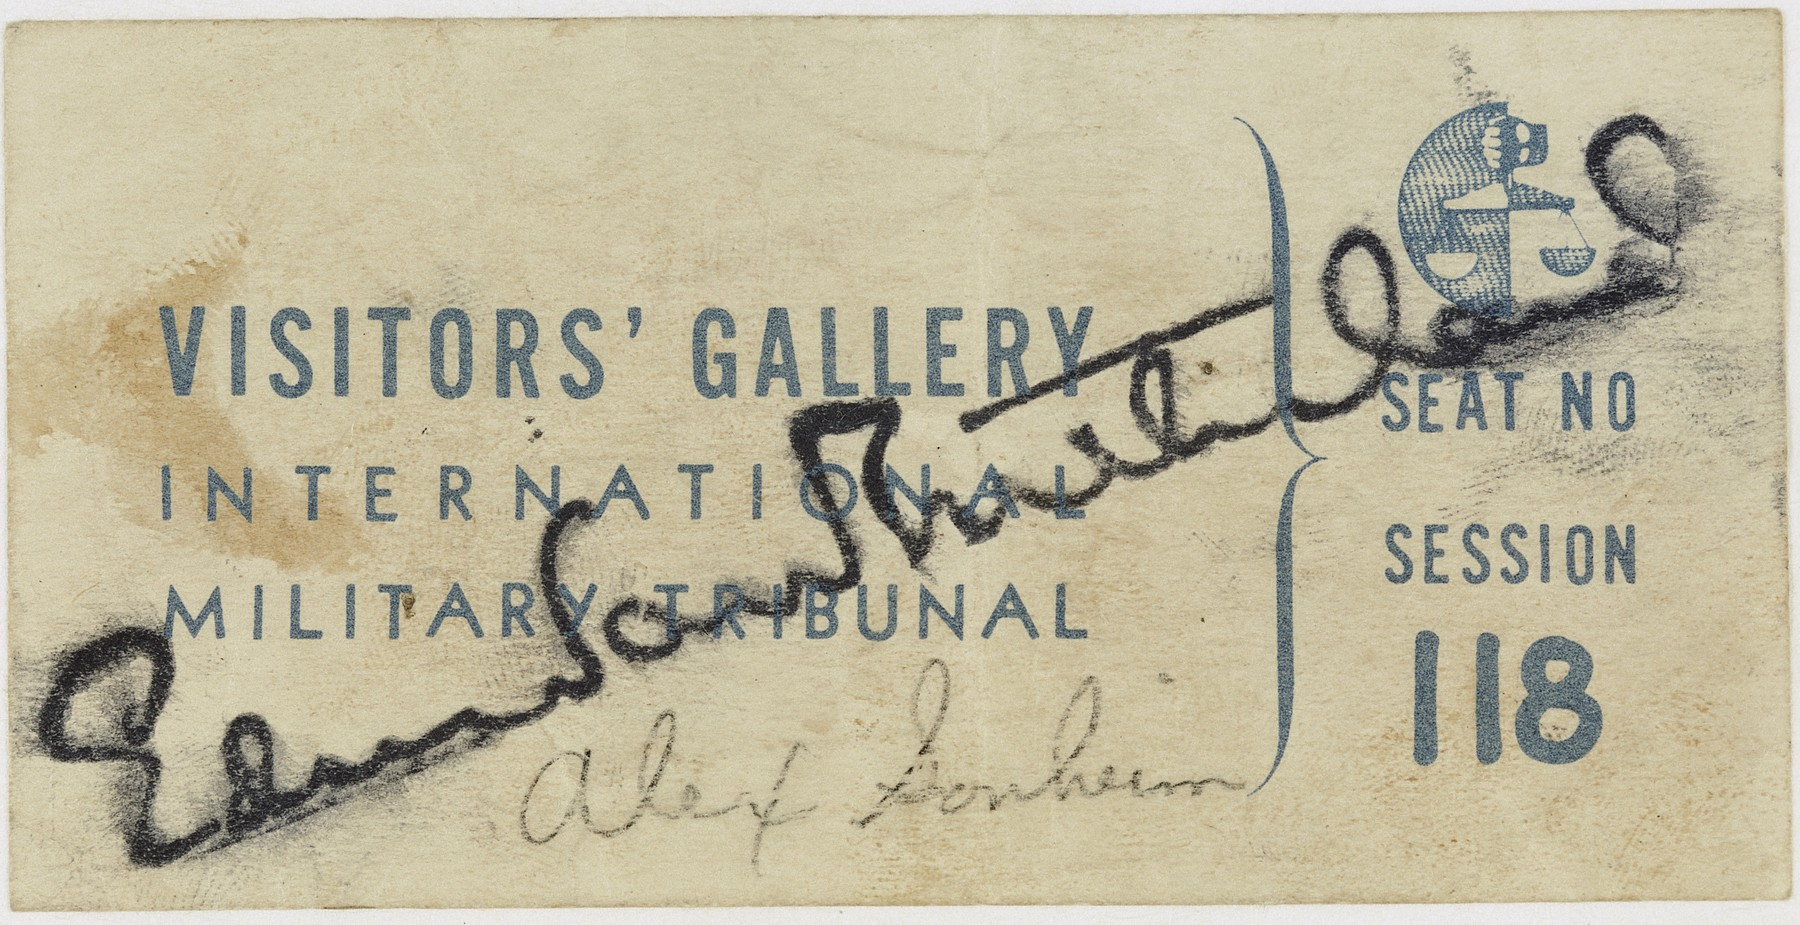 Visitors' Gallery pass to the International Military Tribunal at Nuremberg issued to Alex Sonheim.